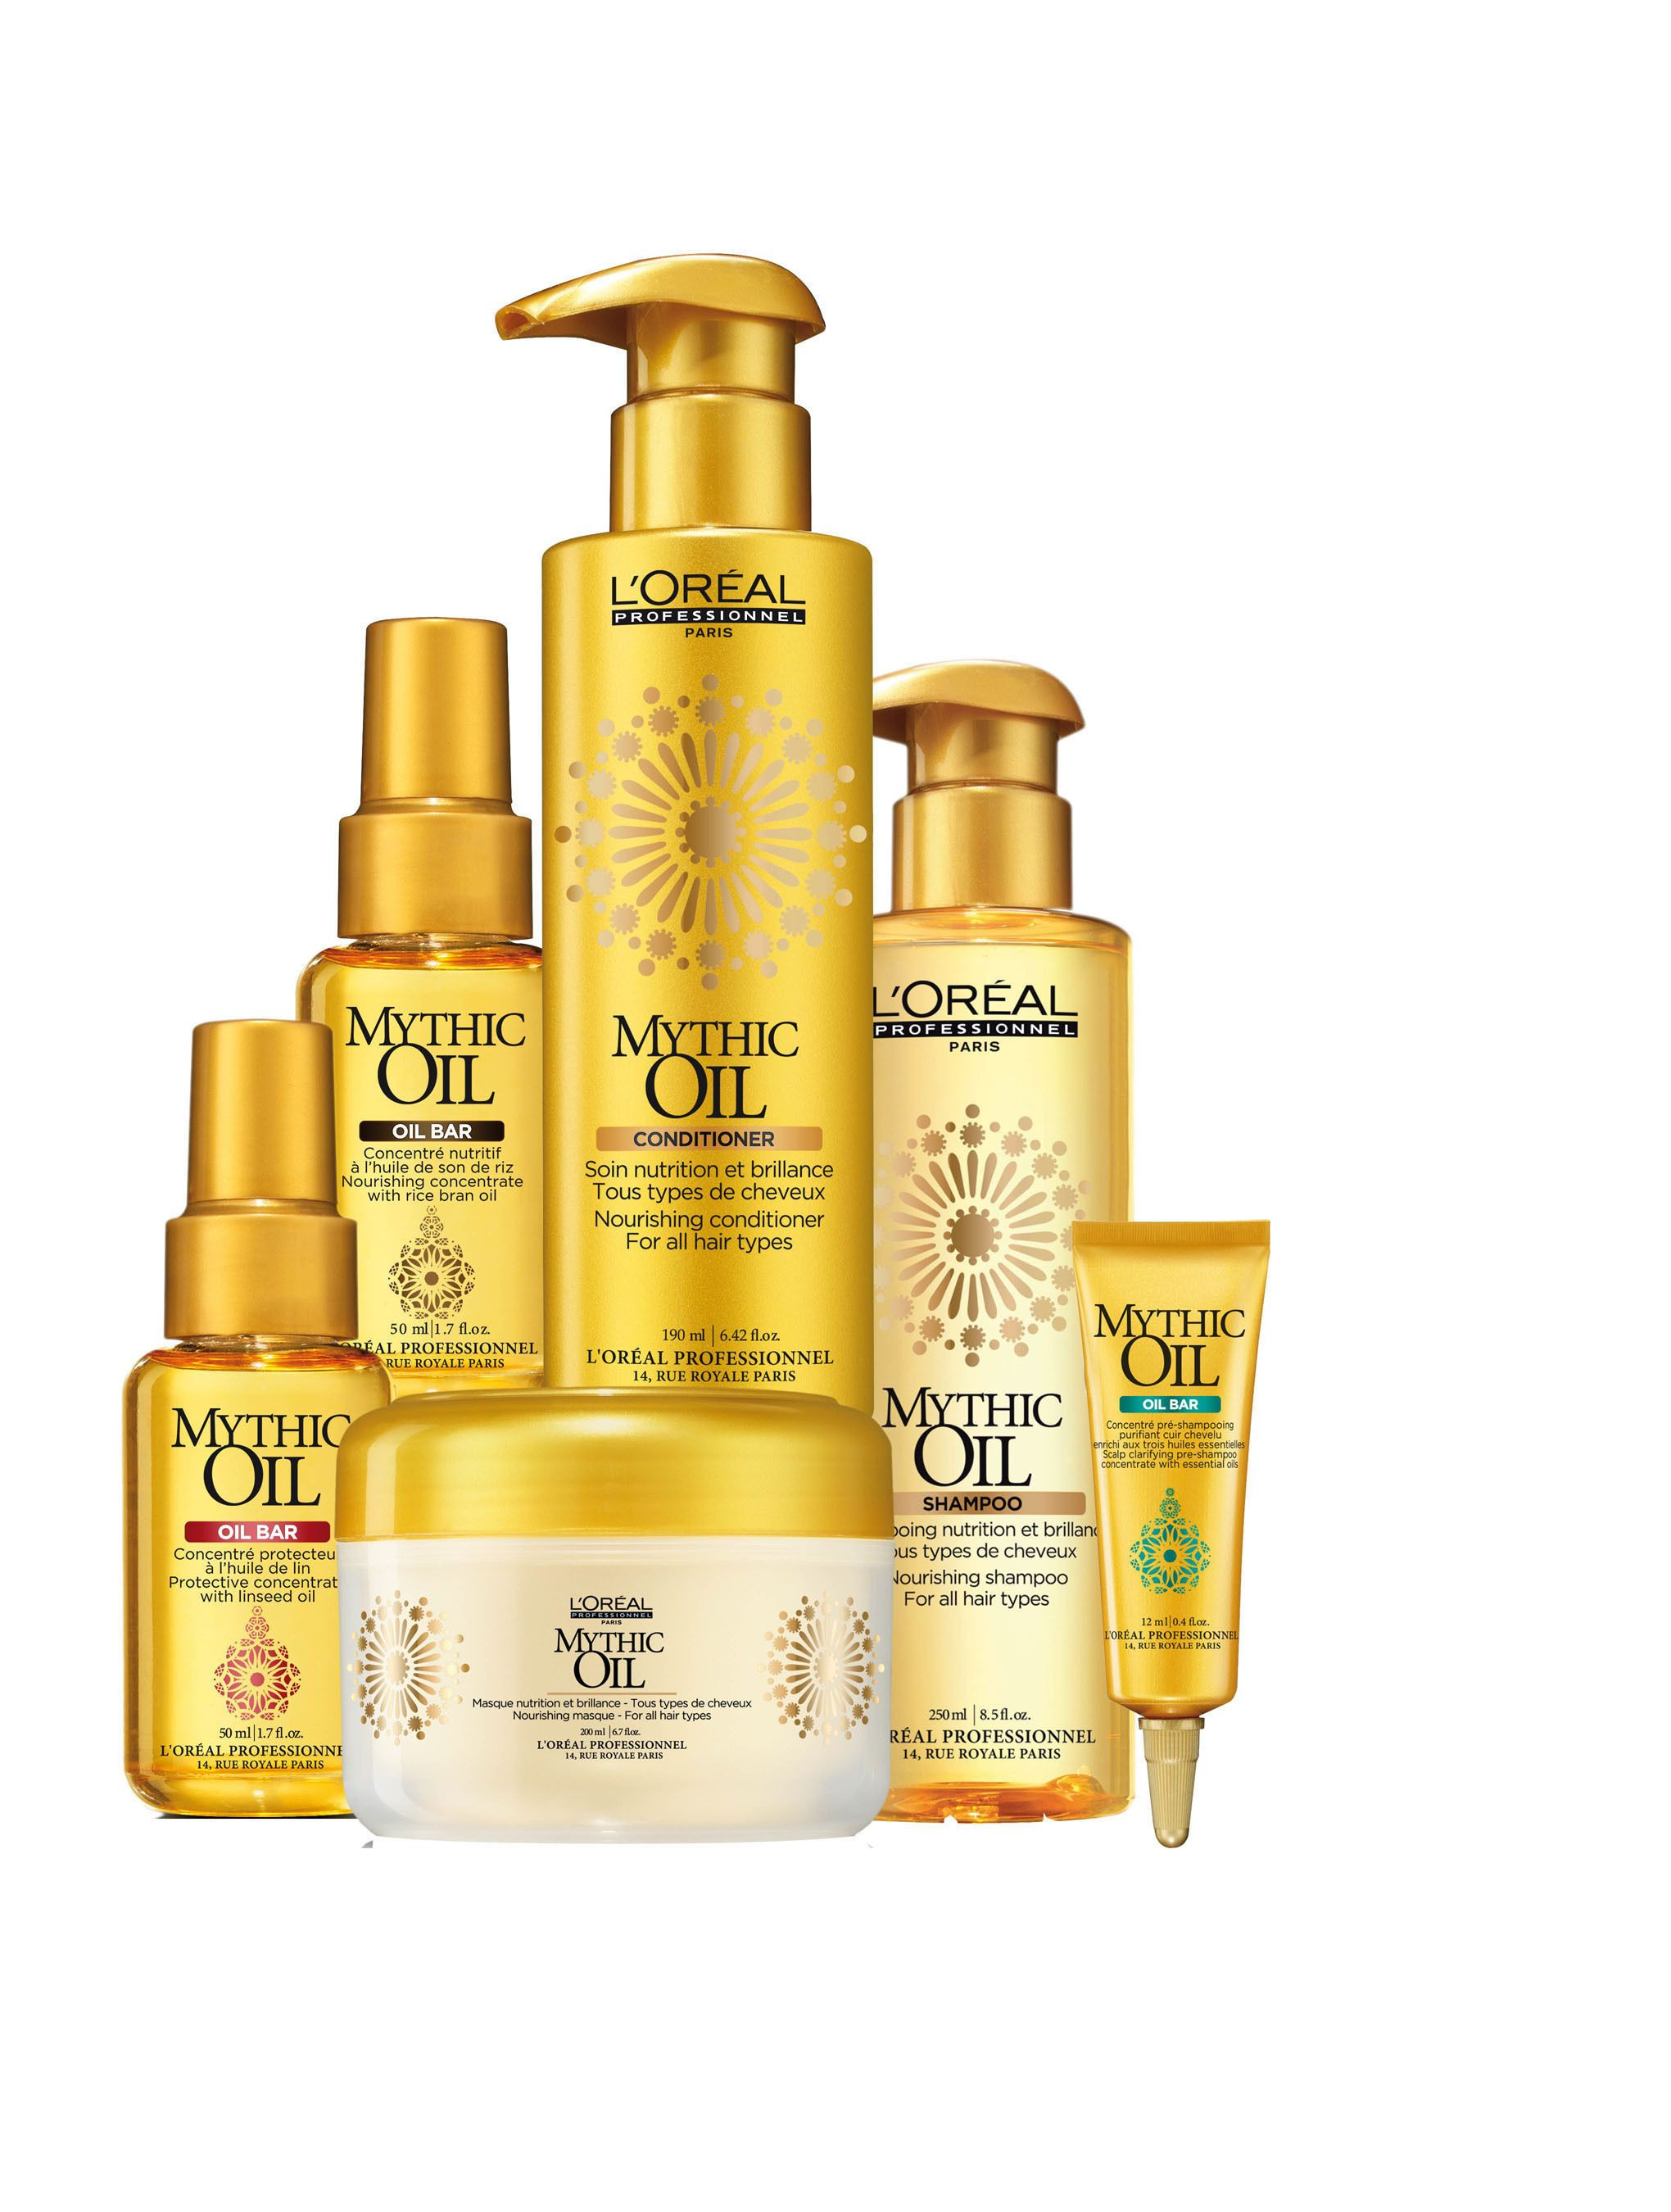 L OREAL PRODUCTS Mythic Oil Hair Care Products By LOreal L